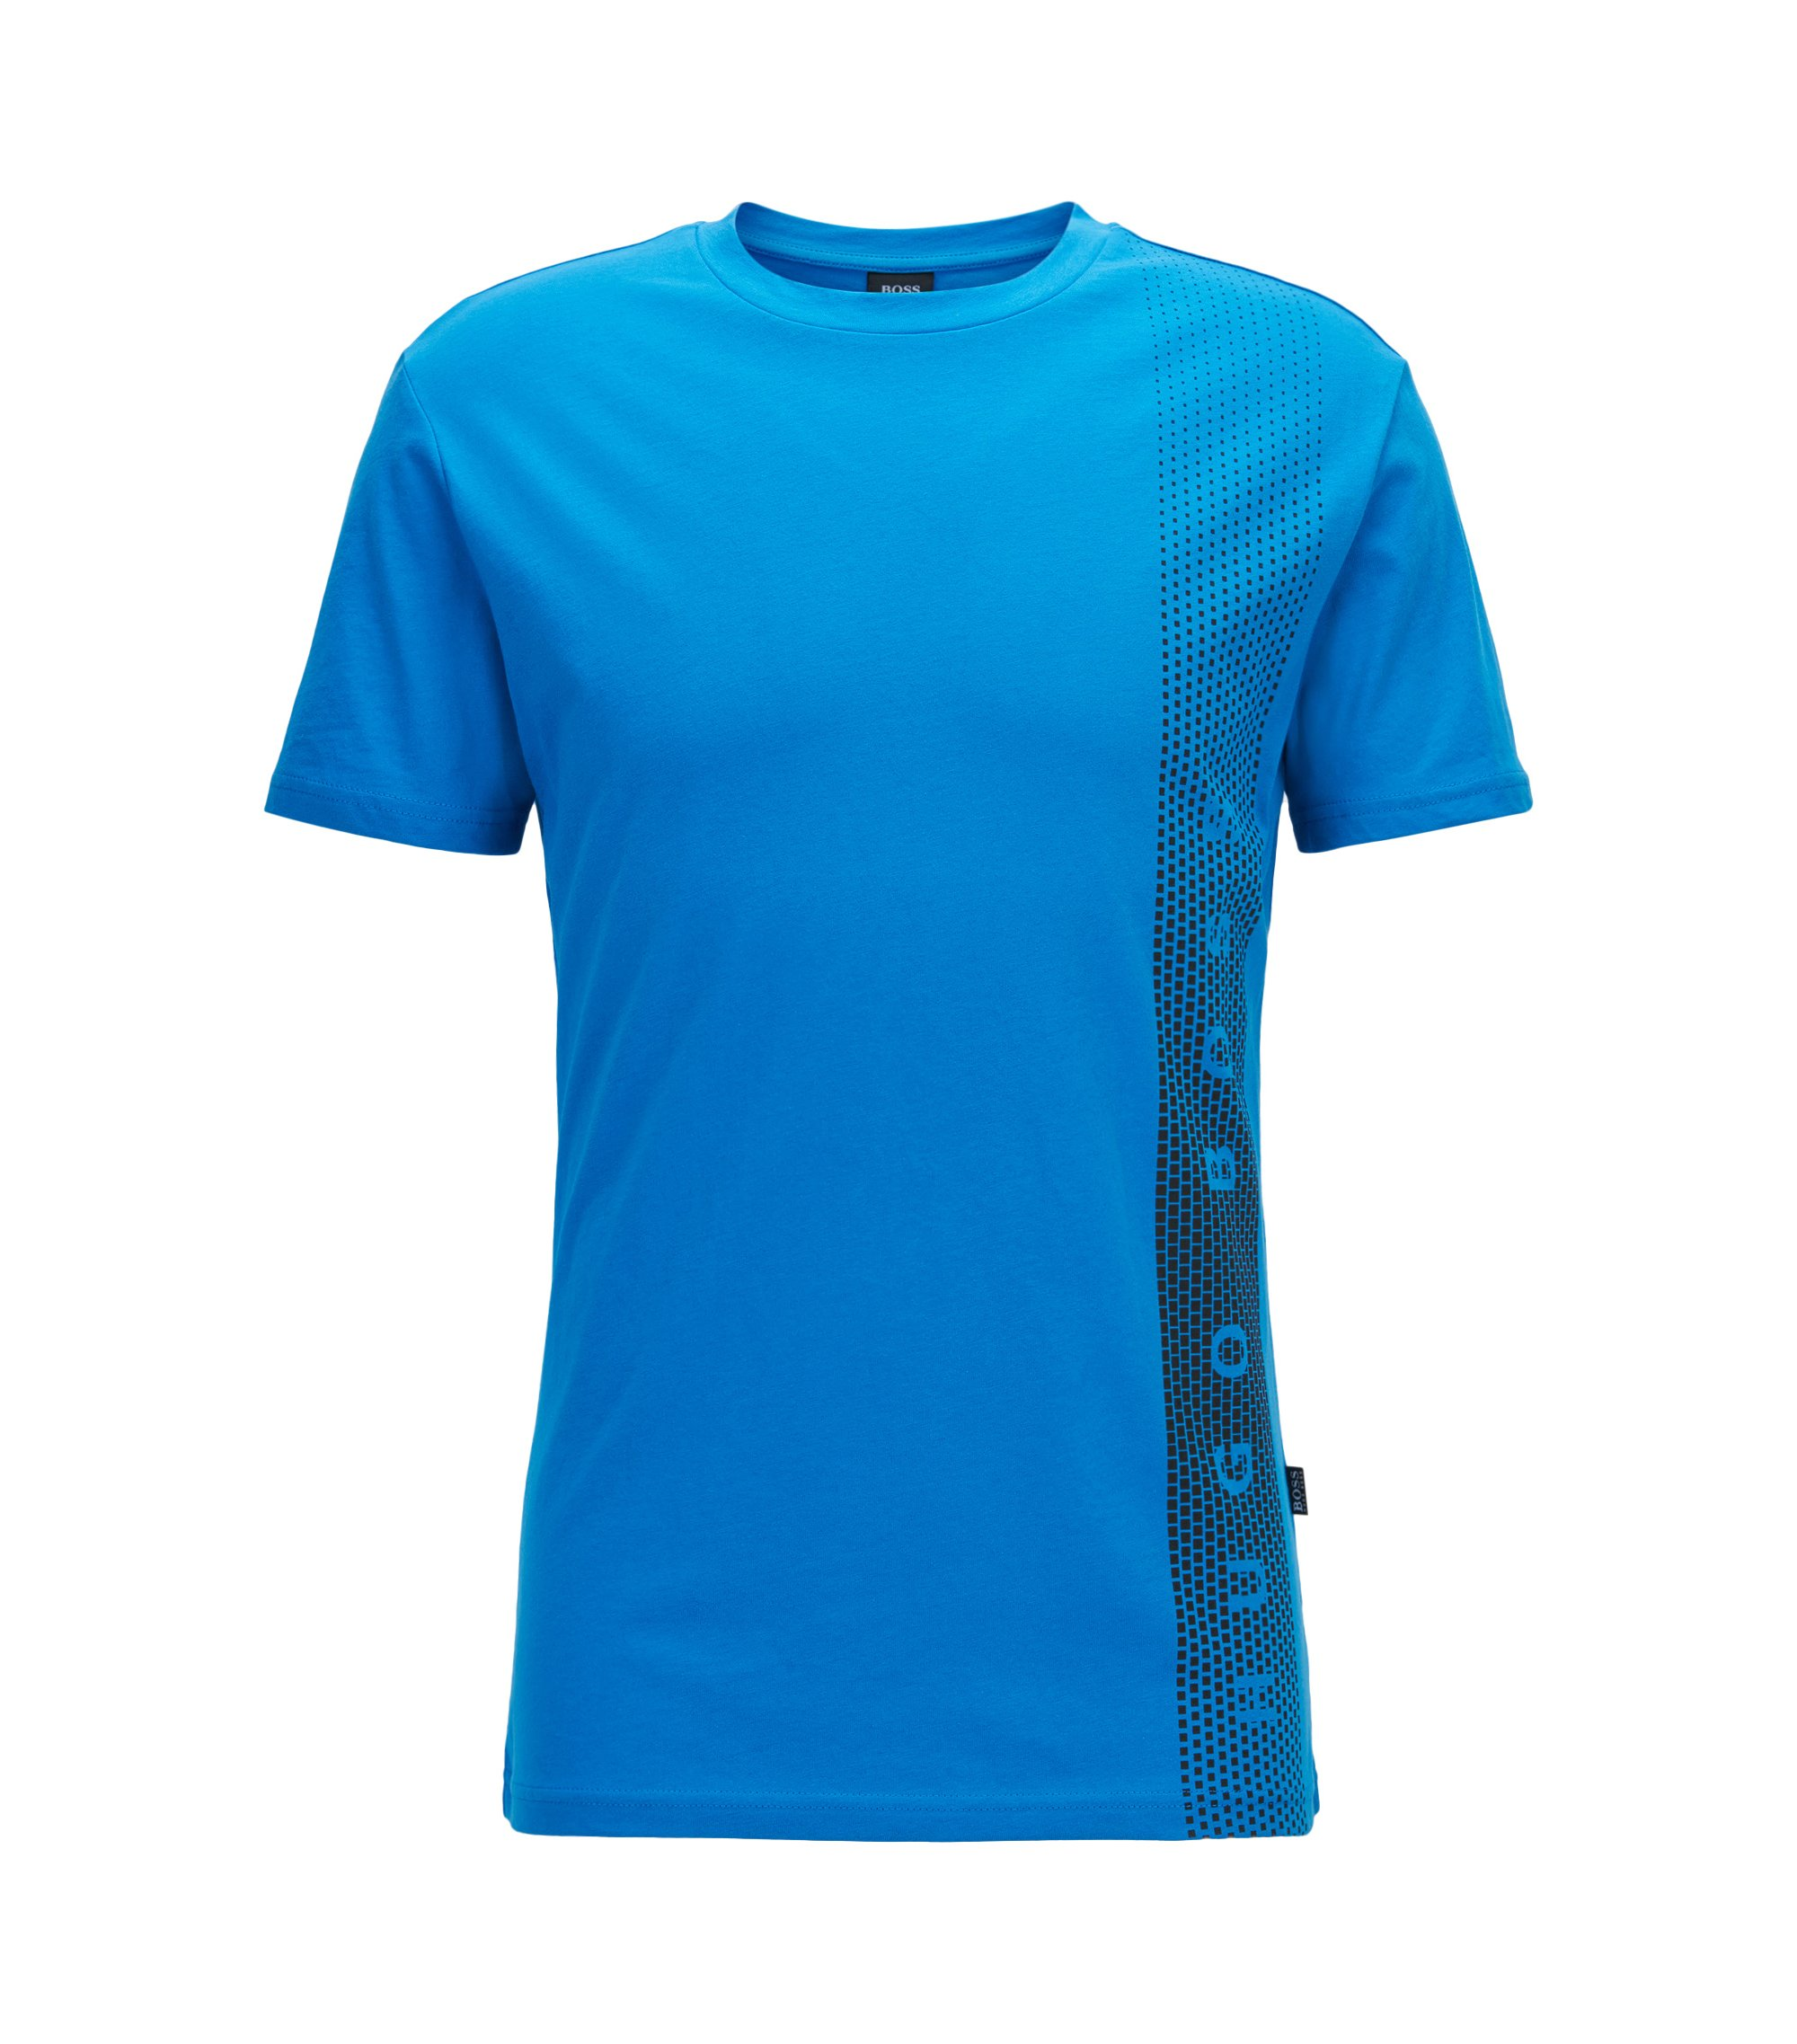 T-shirt Slim Fit en coton avec protection anti-UV, Bleu